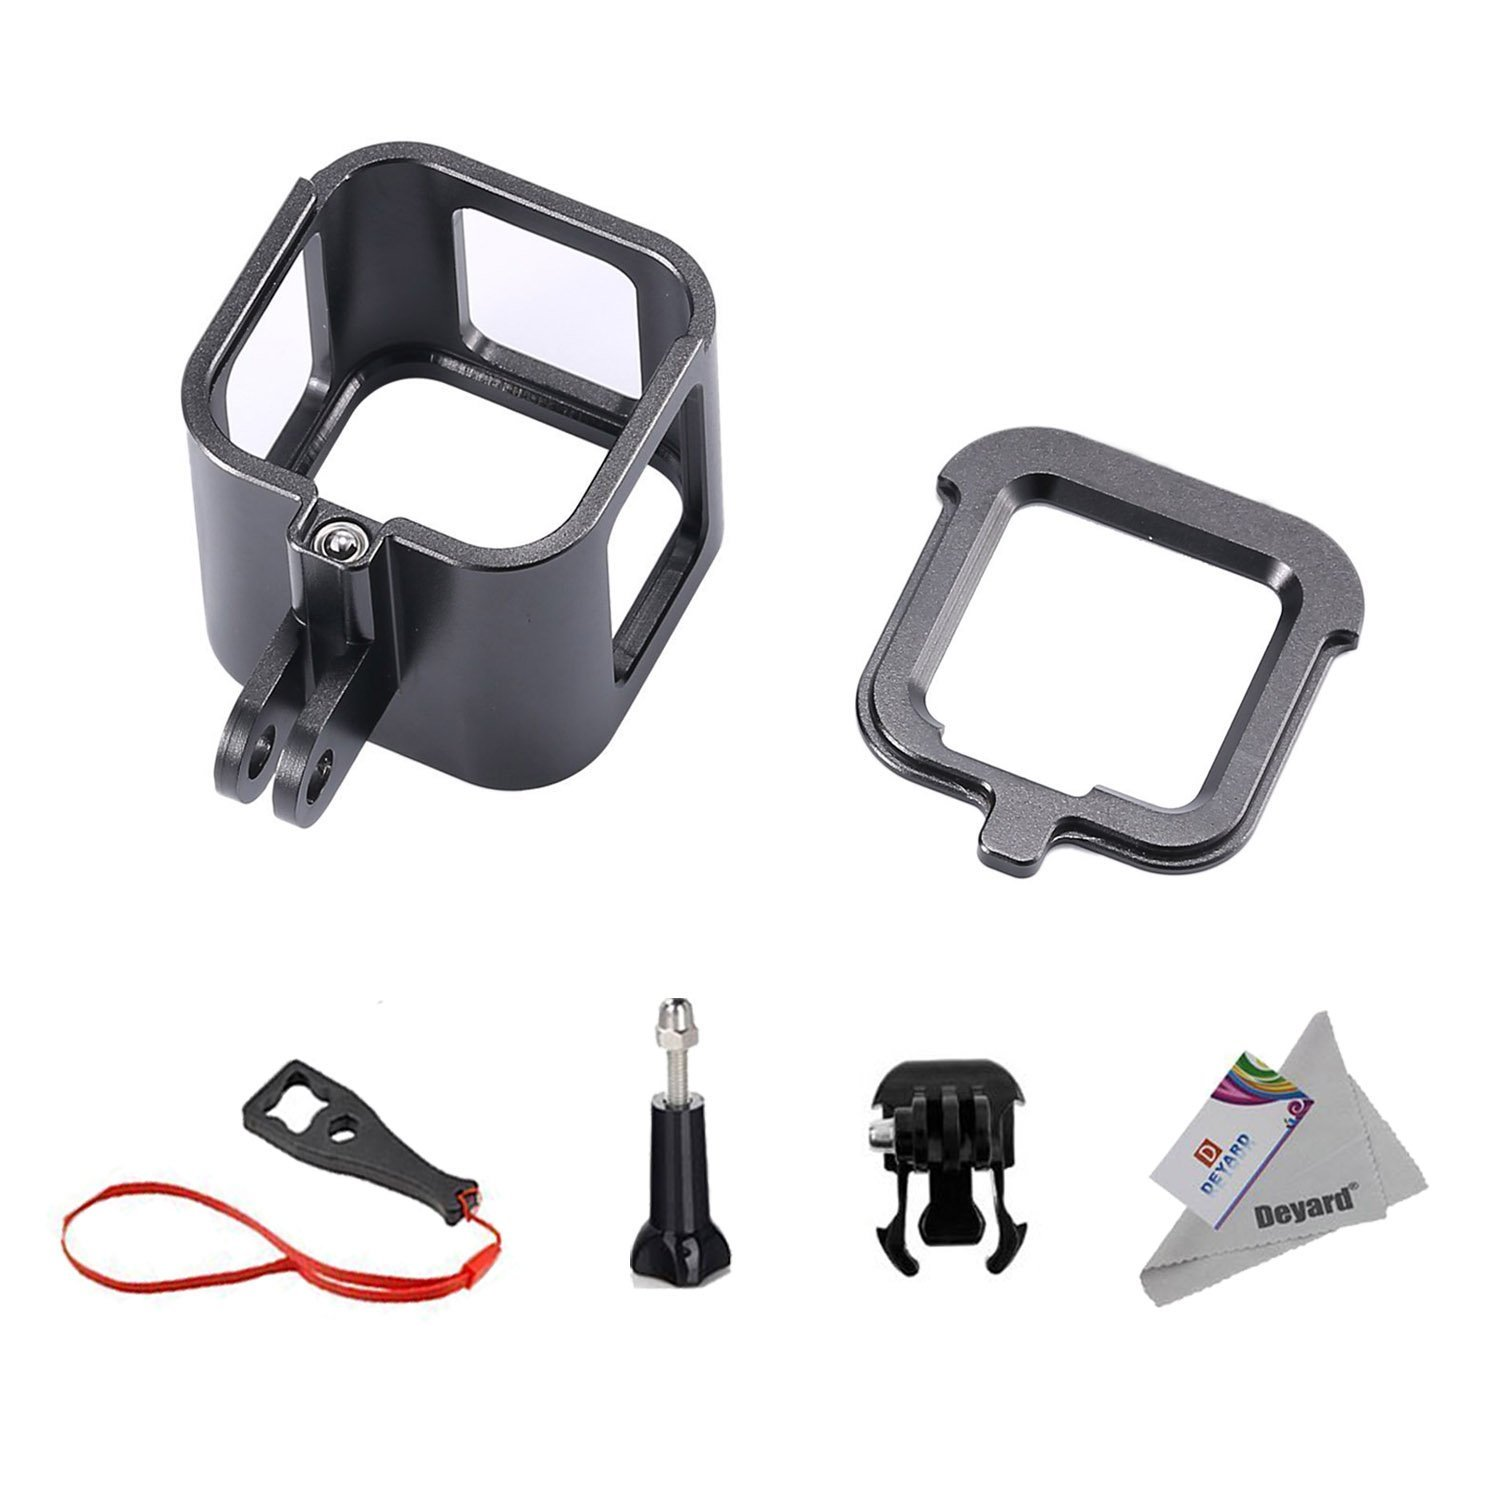 Deyard S-08 Aluminum Alloy Standard Protective Housing Frame Case for GoPro Hero 5 Session Hero 4 Session Camera Deyard Tech TS008